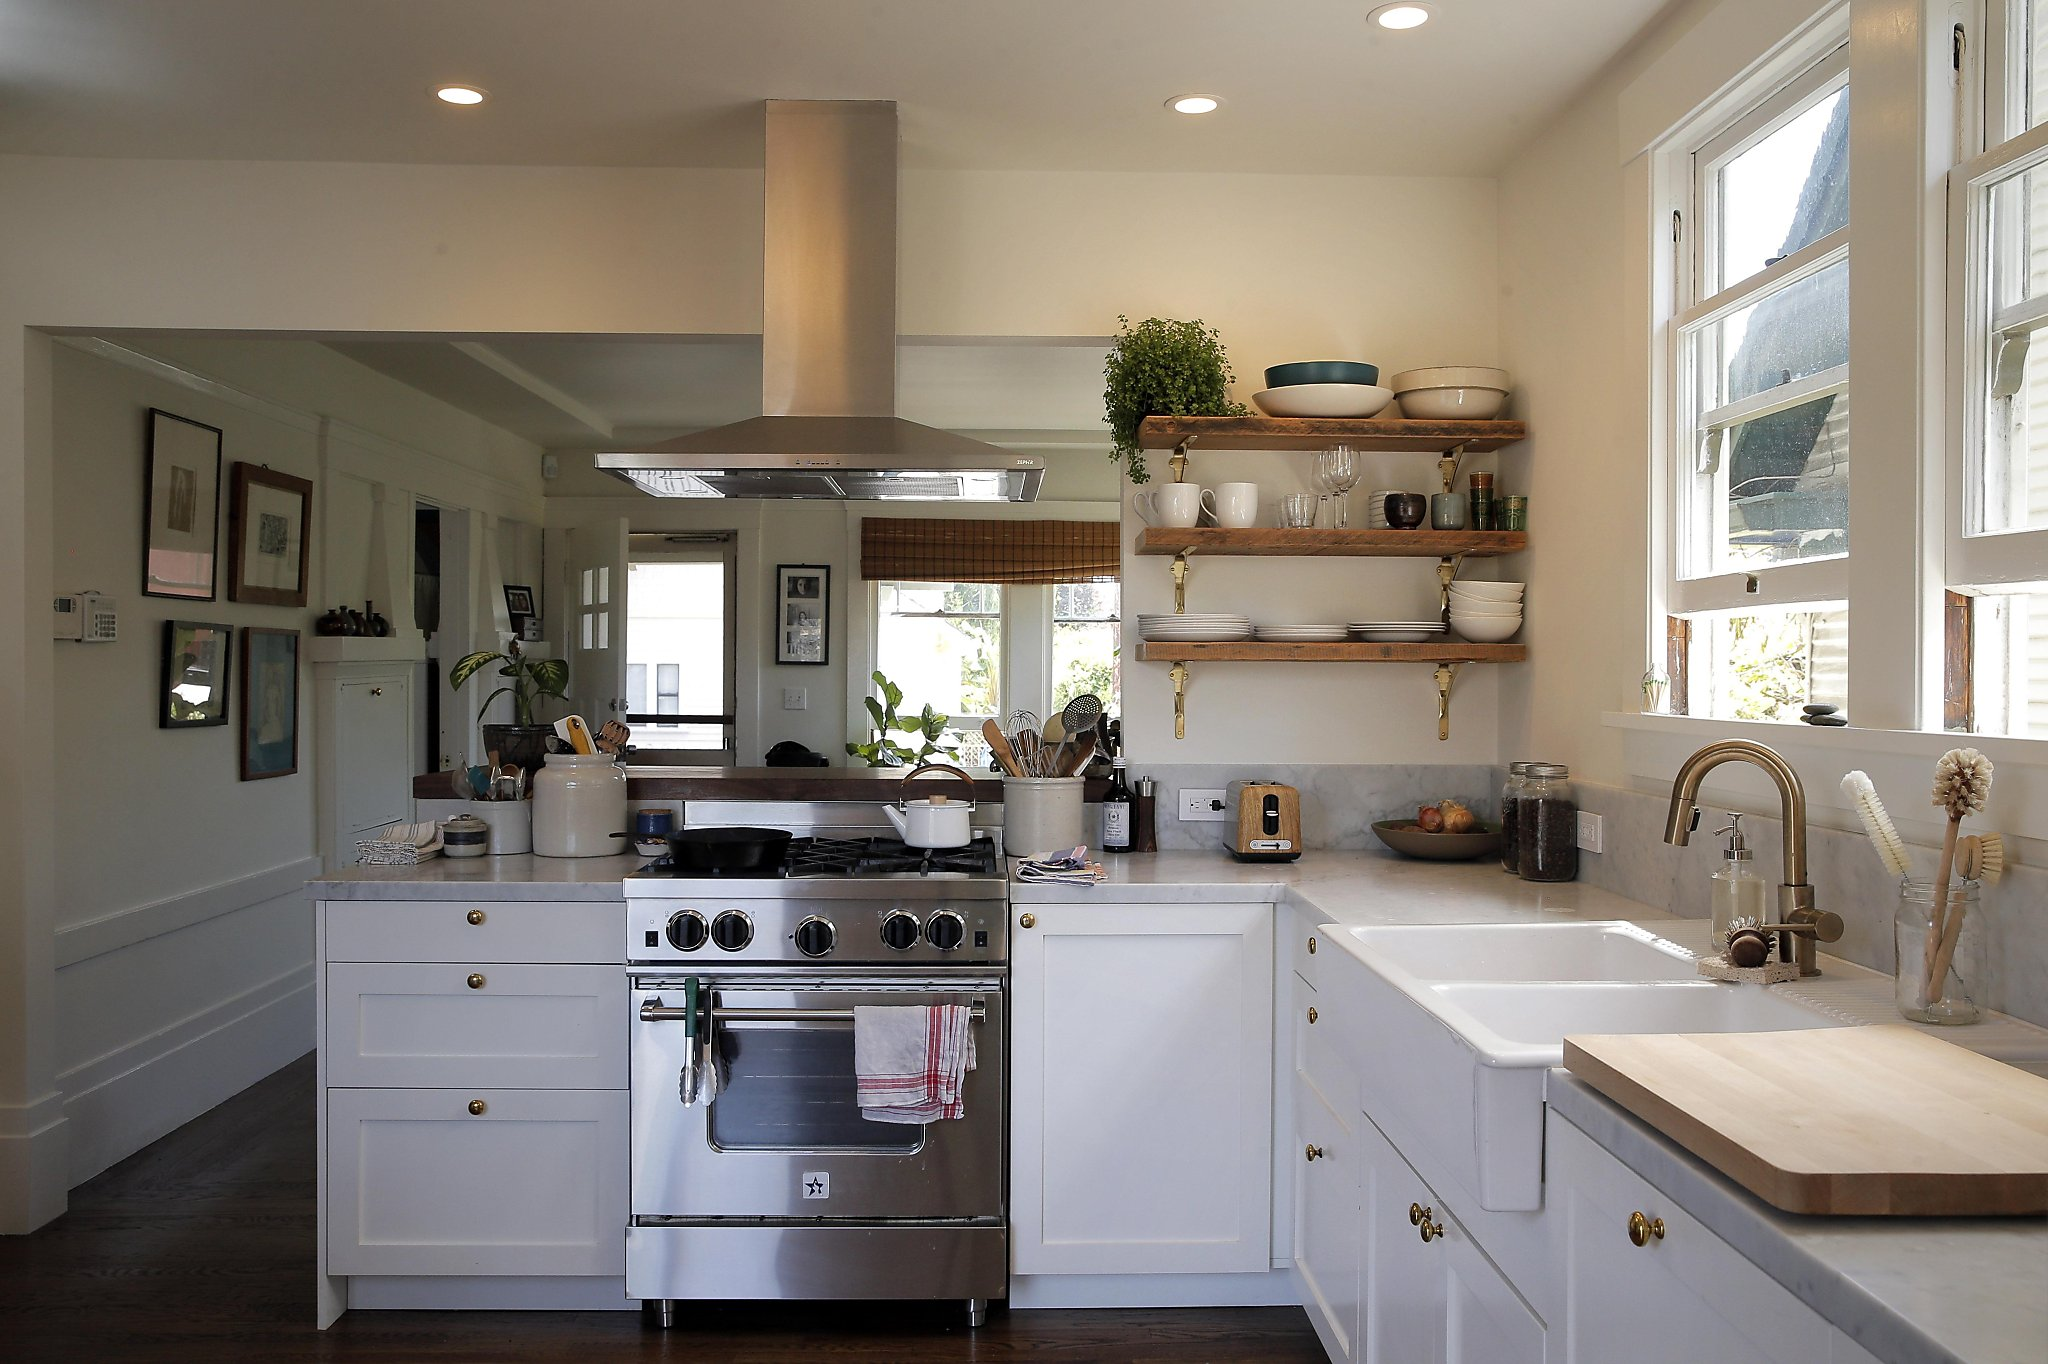 Chef S Kitchen Adds Light Flow To Entire Oakland Home Remodel Sfchronicle Com